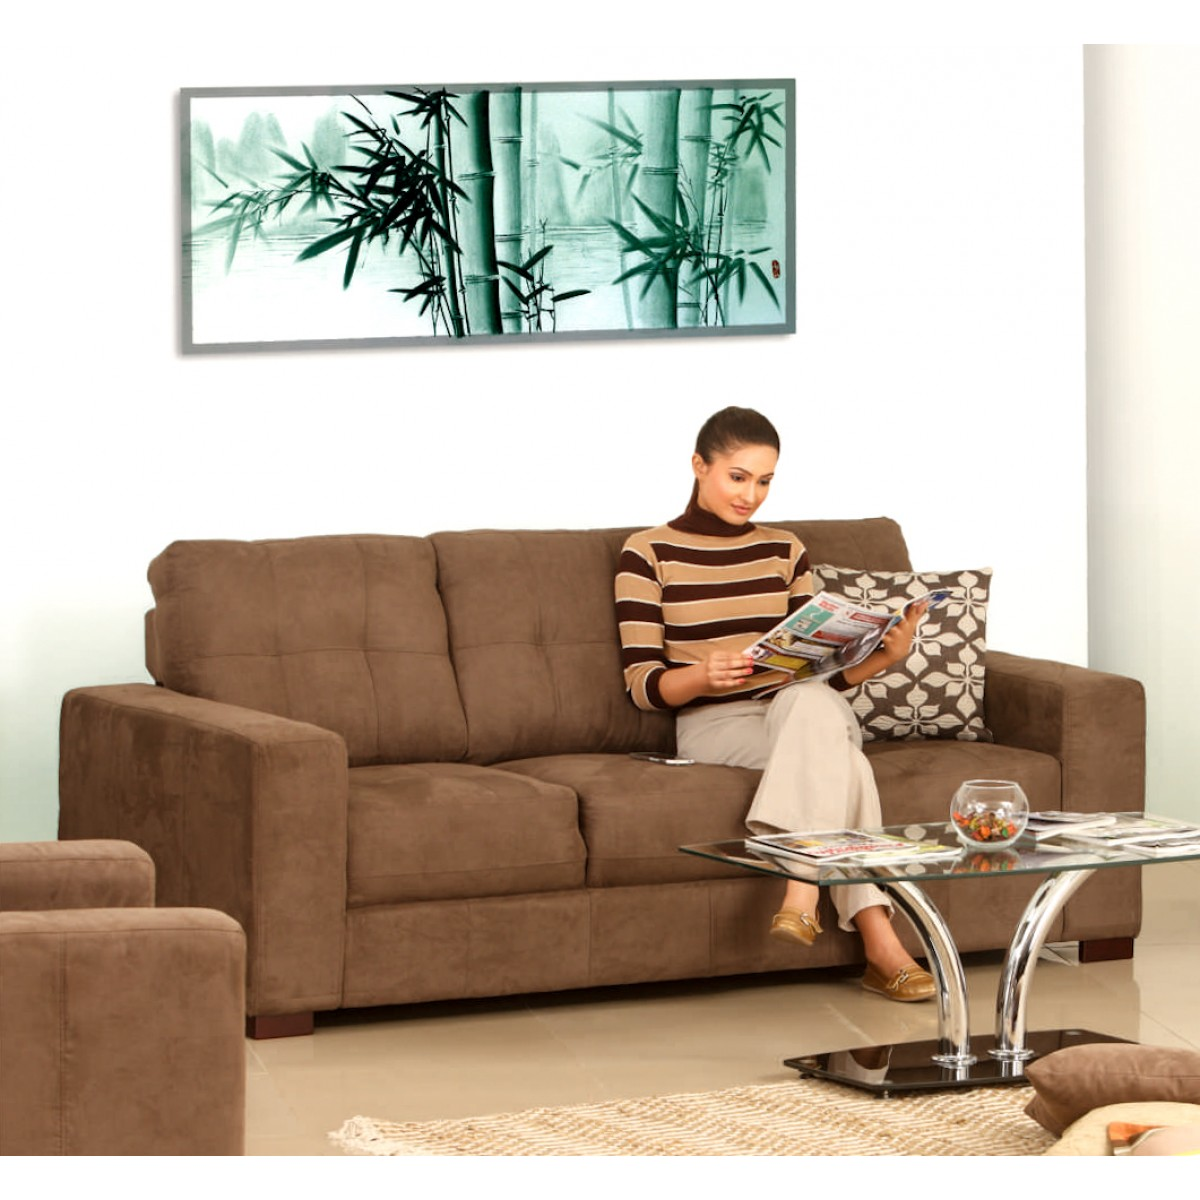 Corner Sofa Set Price In Hyderabad: HYDERABAD Photos, Images And Wallpapers